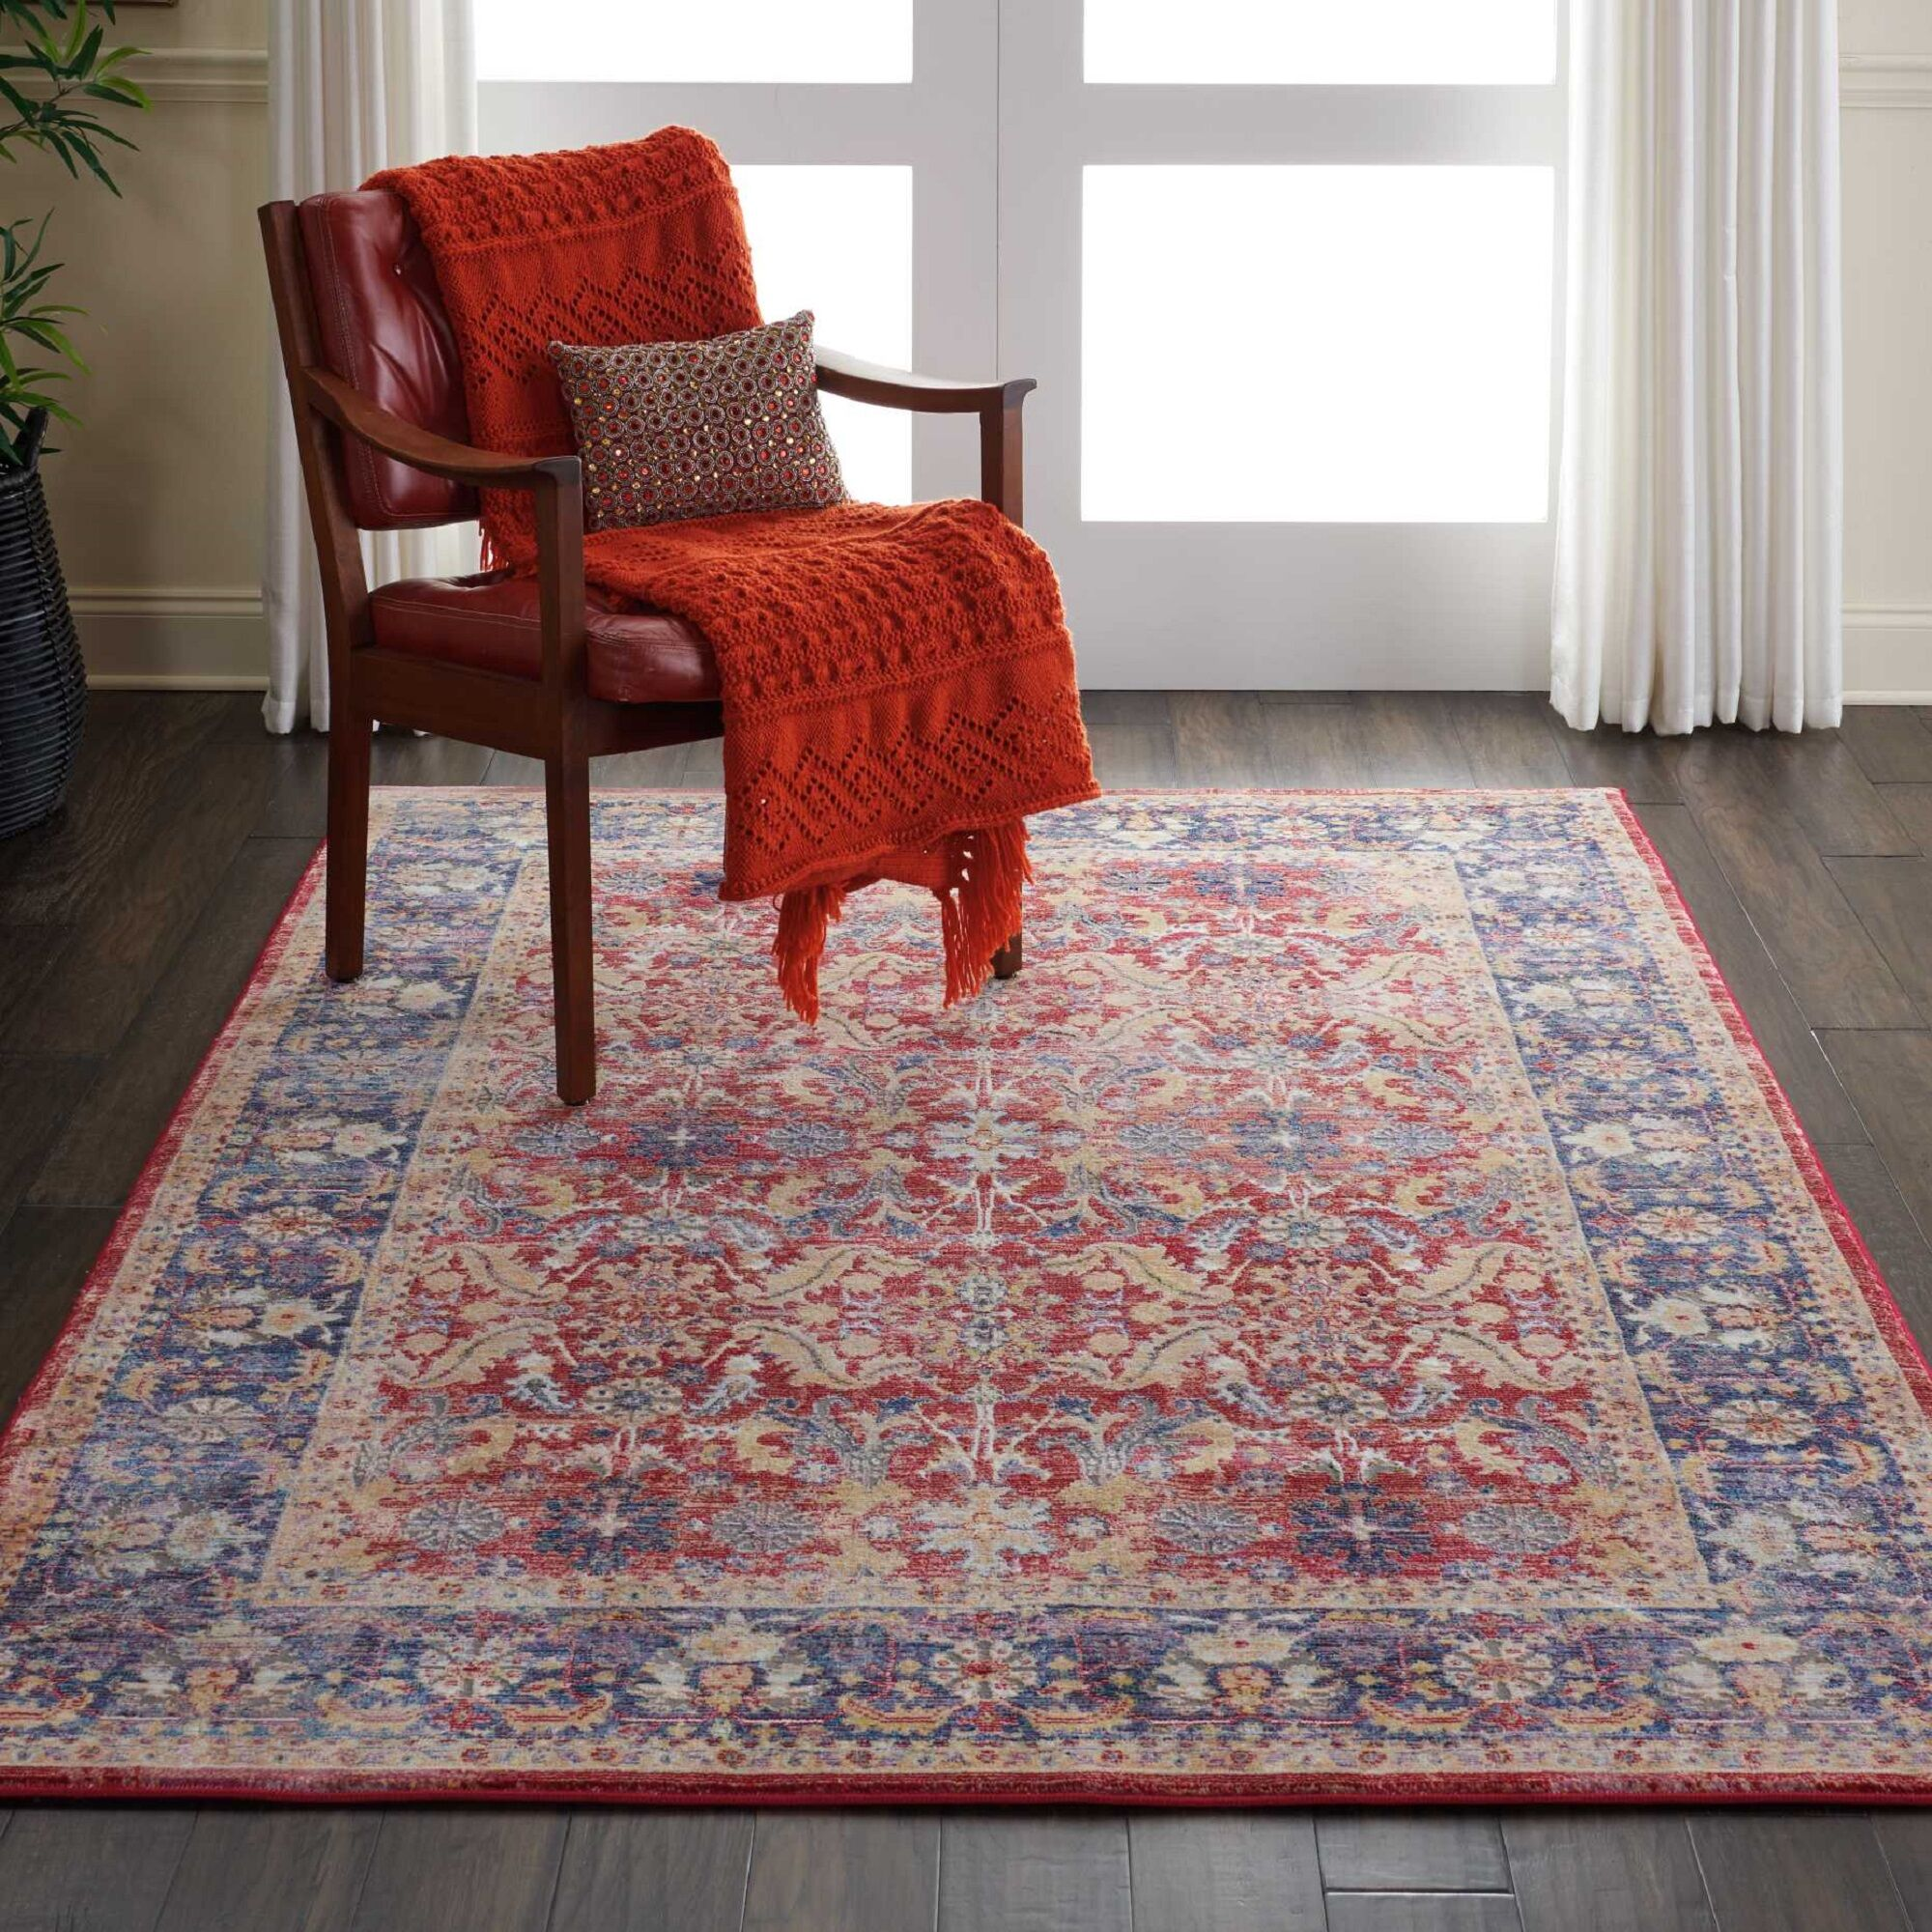 Oglethorpe Power Loom Blue/Red Area Rug Rug Size: Rectangle 5'3